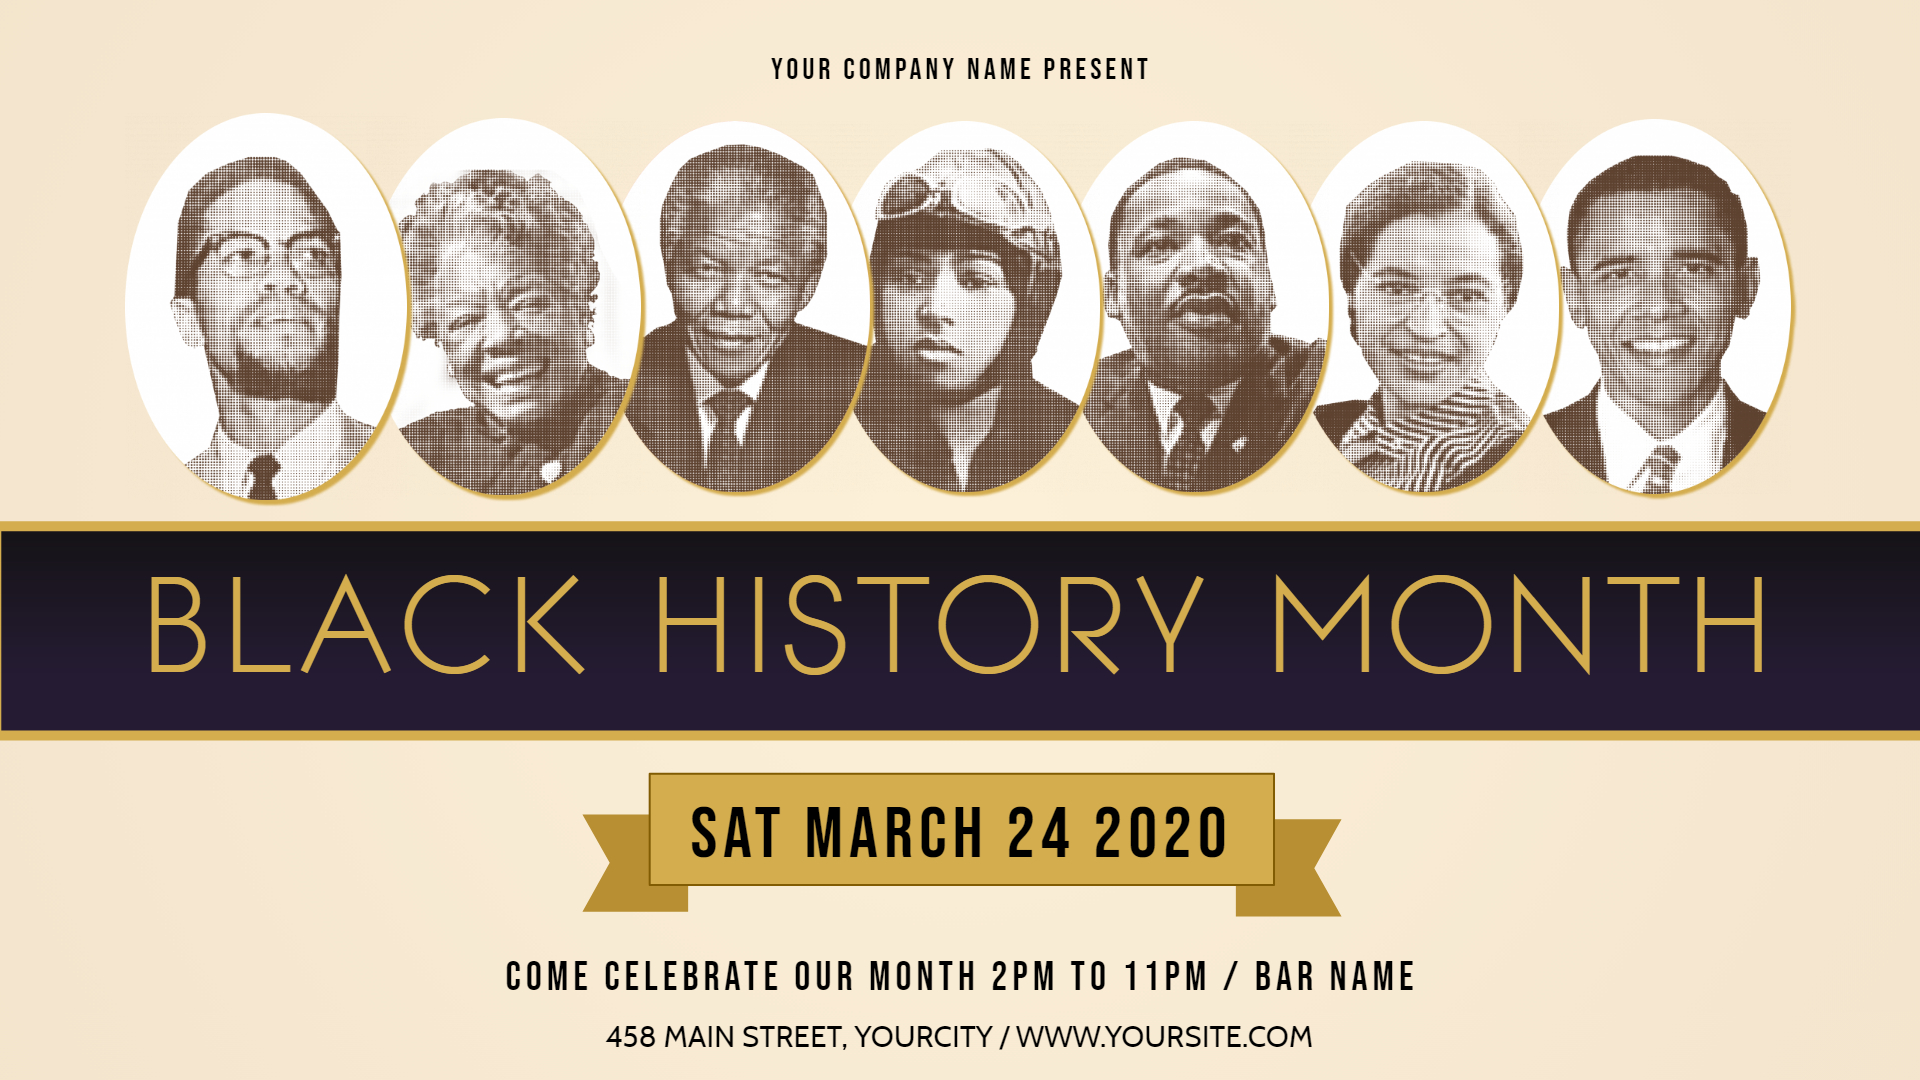 New Design Ideas for Promoting your Black History Month Event 1920x1080